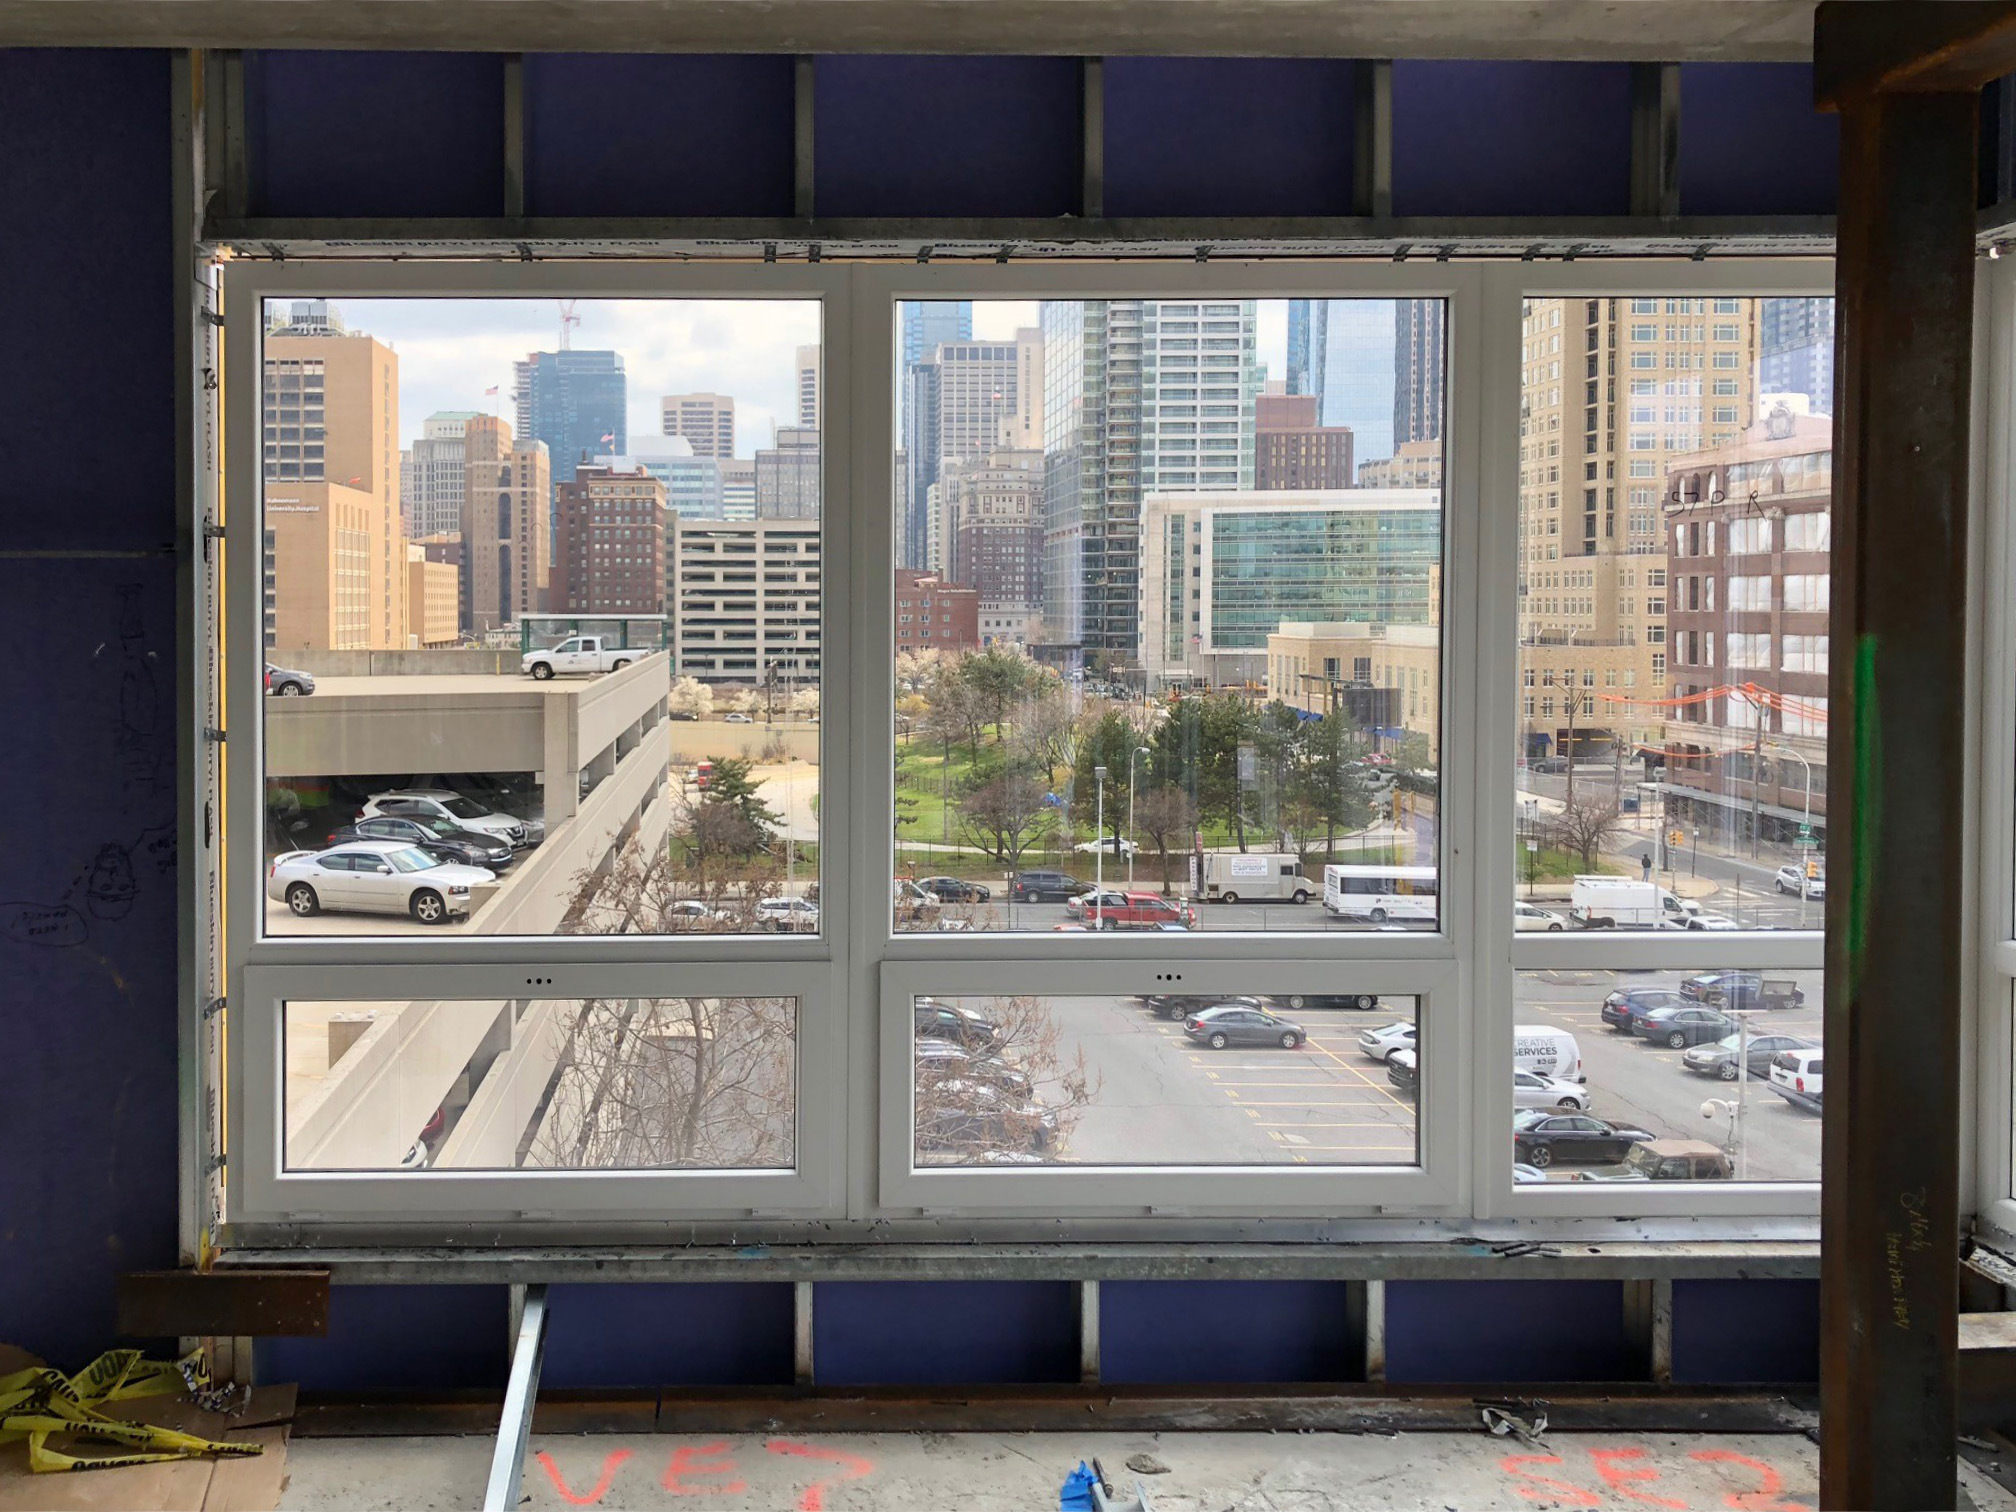 INTUS Windows offers daylight filled rooms at The Hamilton